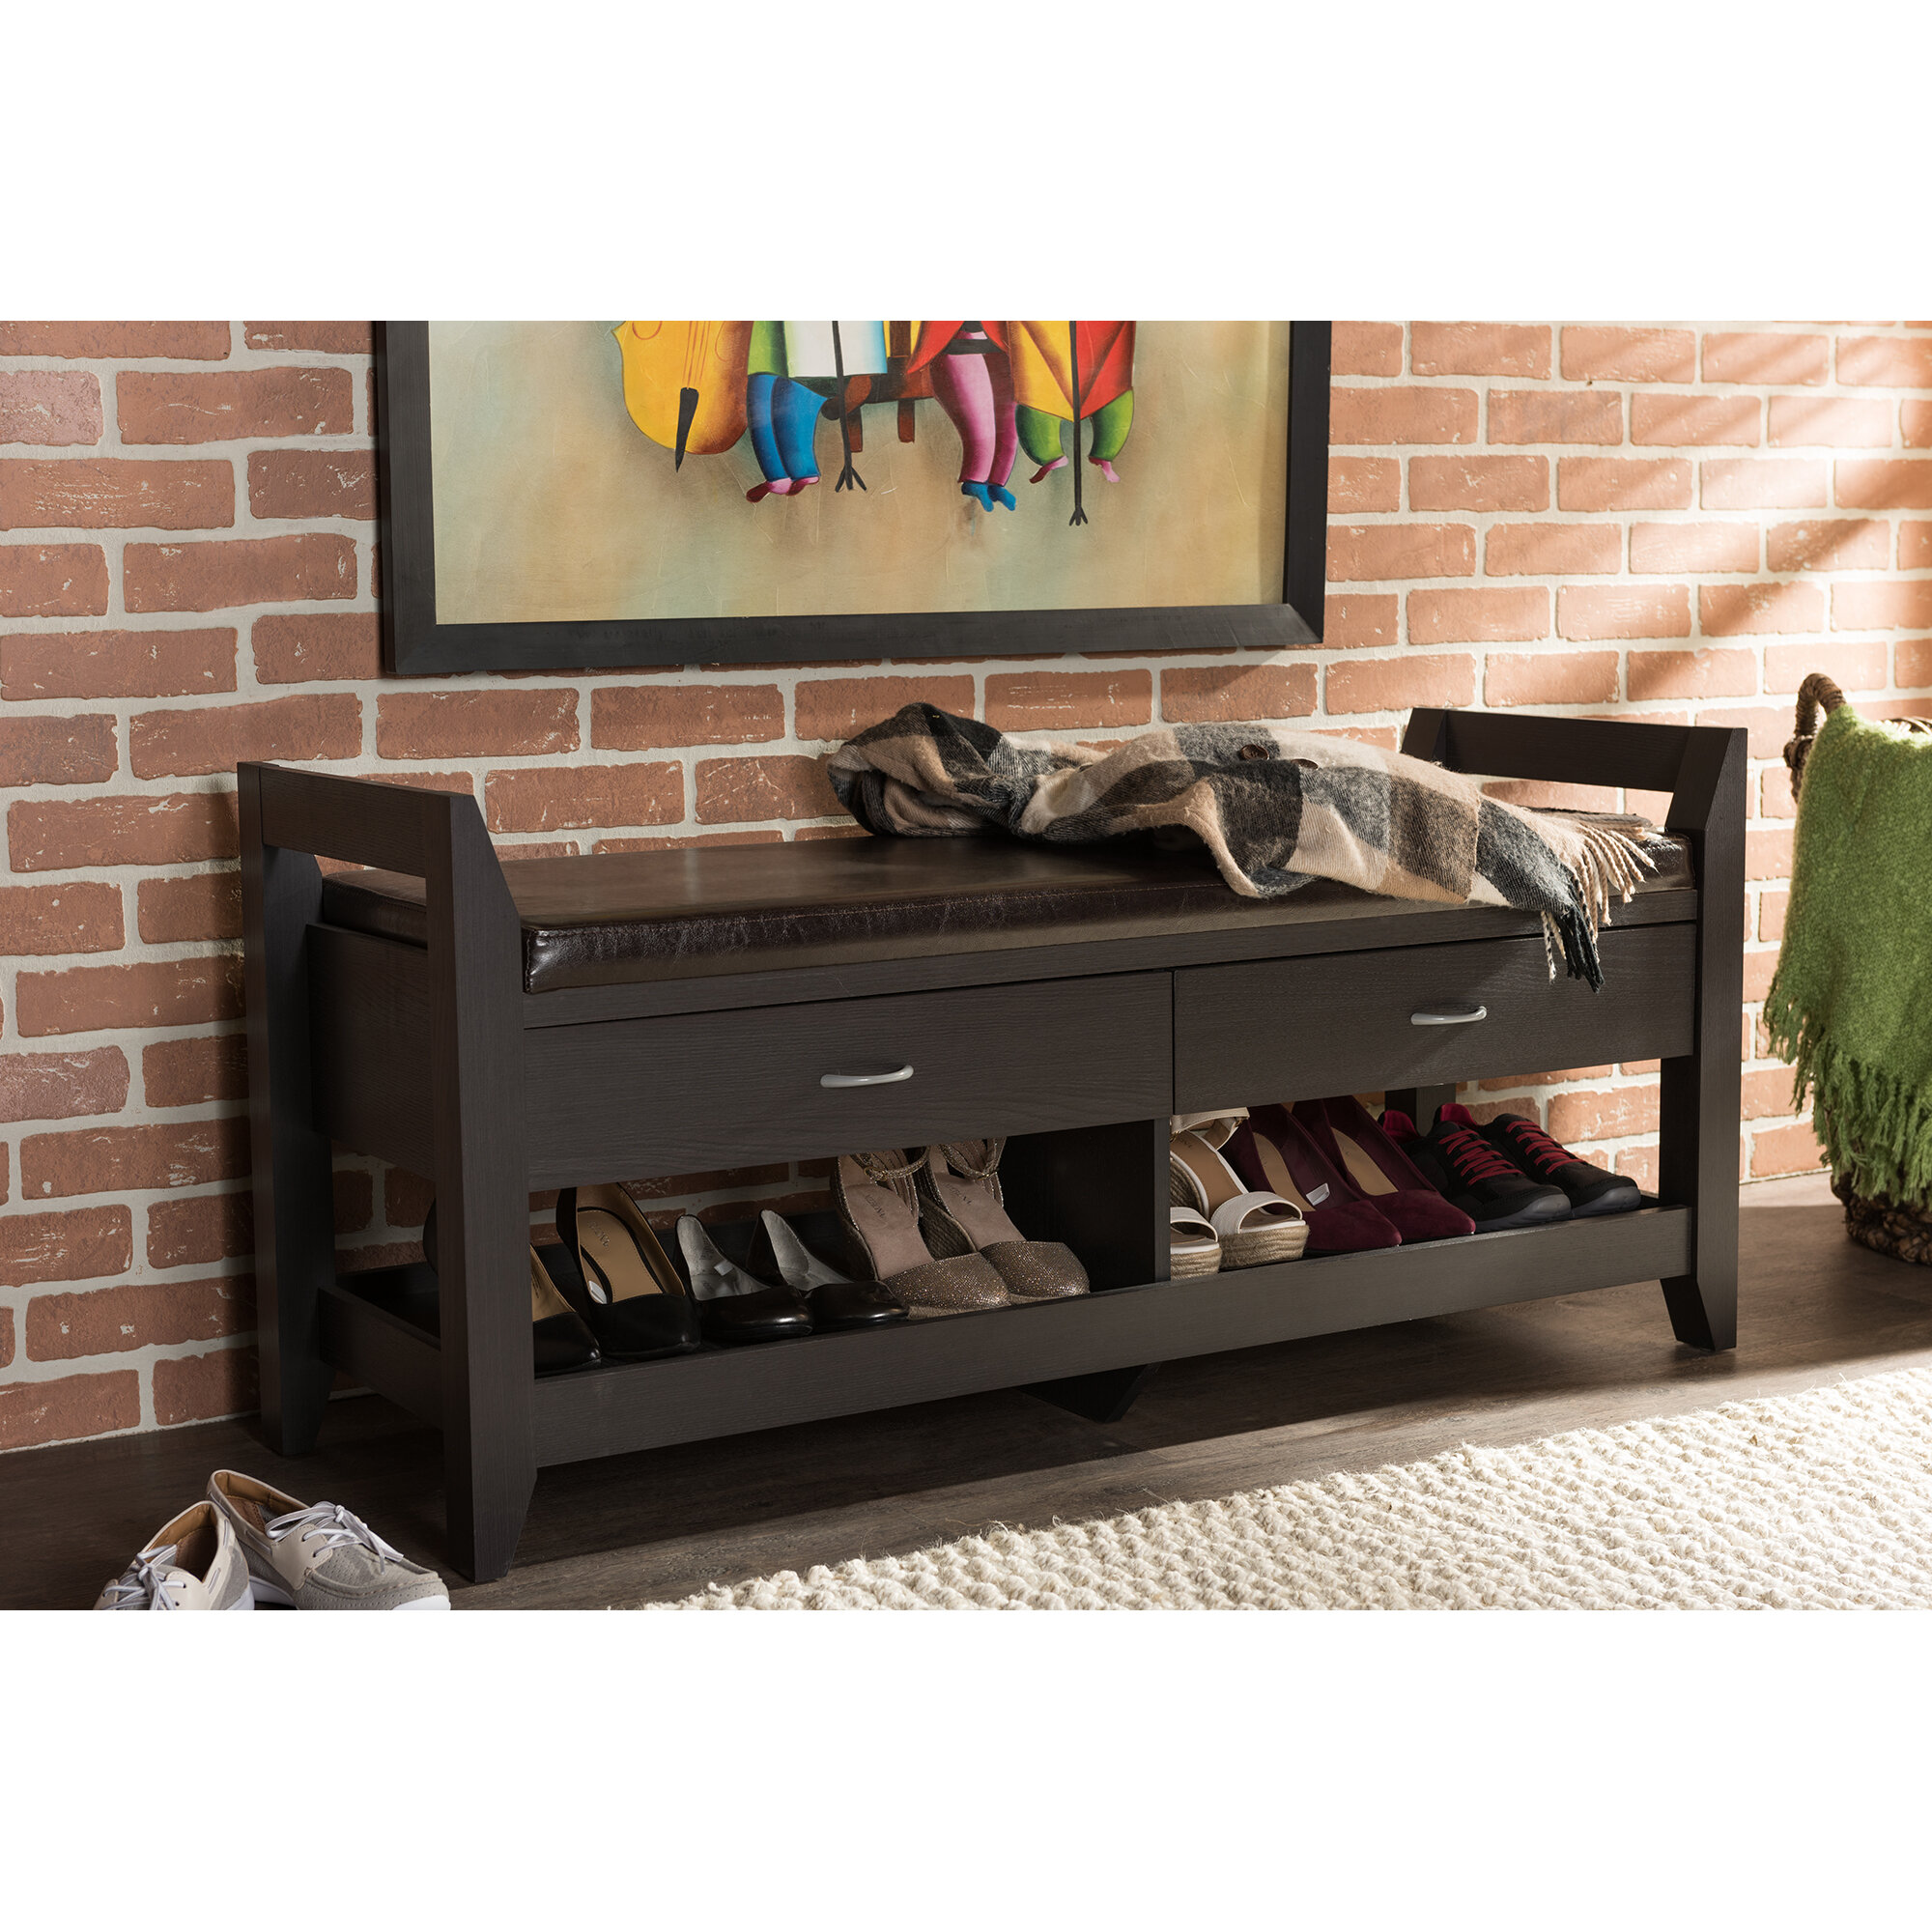 Latitude run zavijah storage bench wayfair for Best brand of paint for kitchen cabinets with wall art for kids bathroom